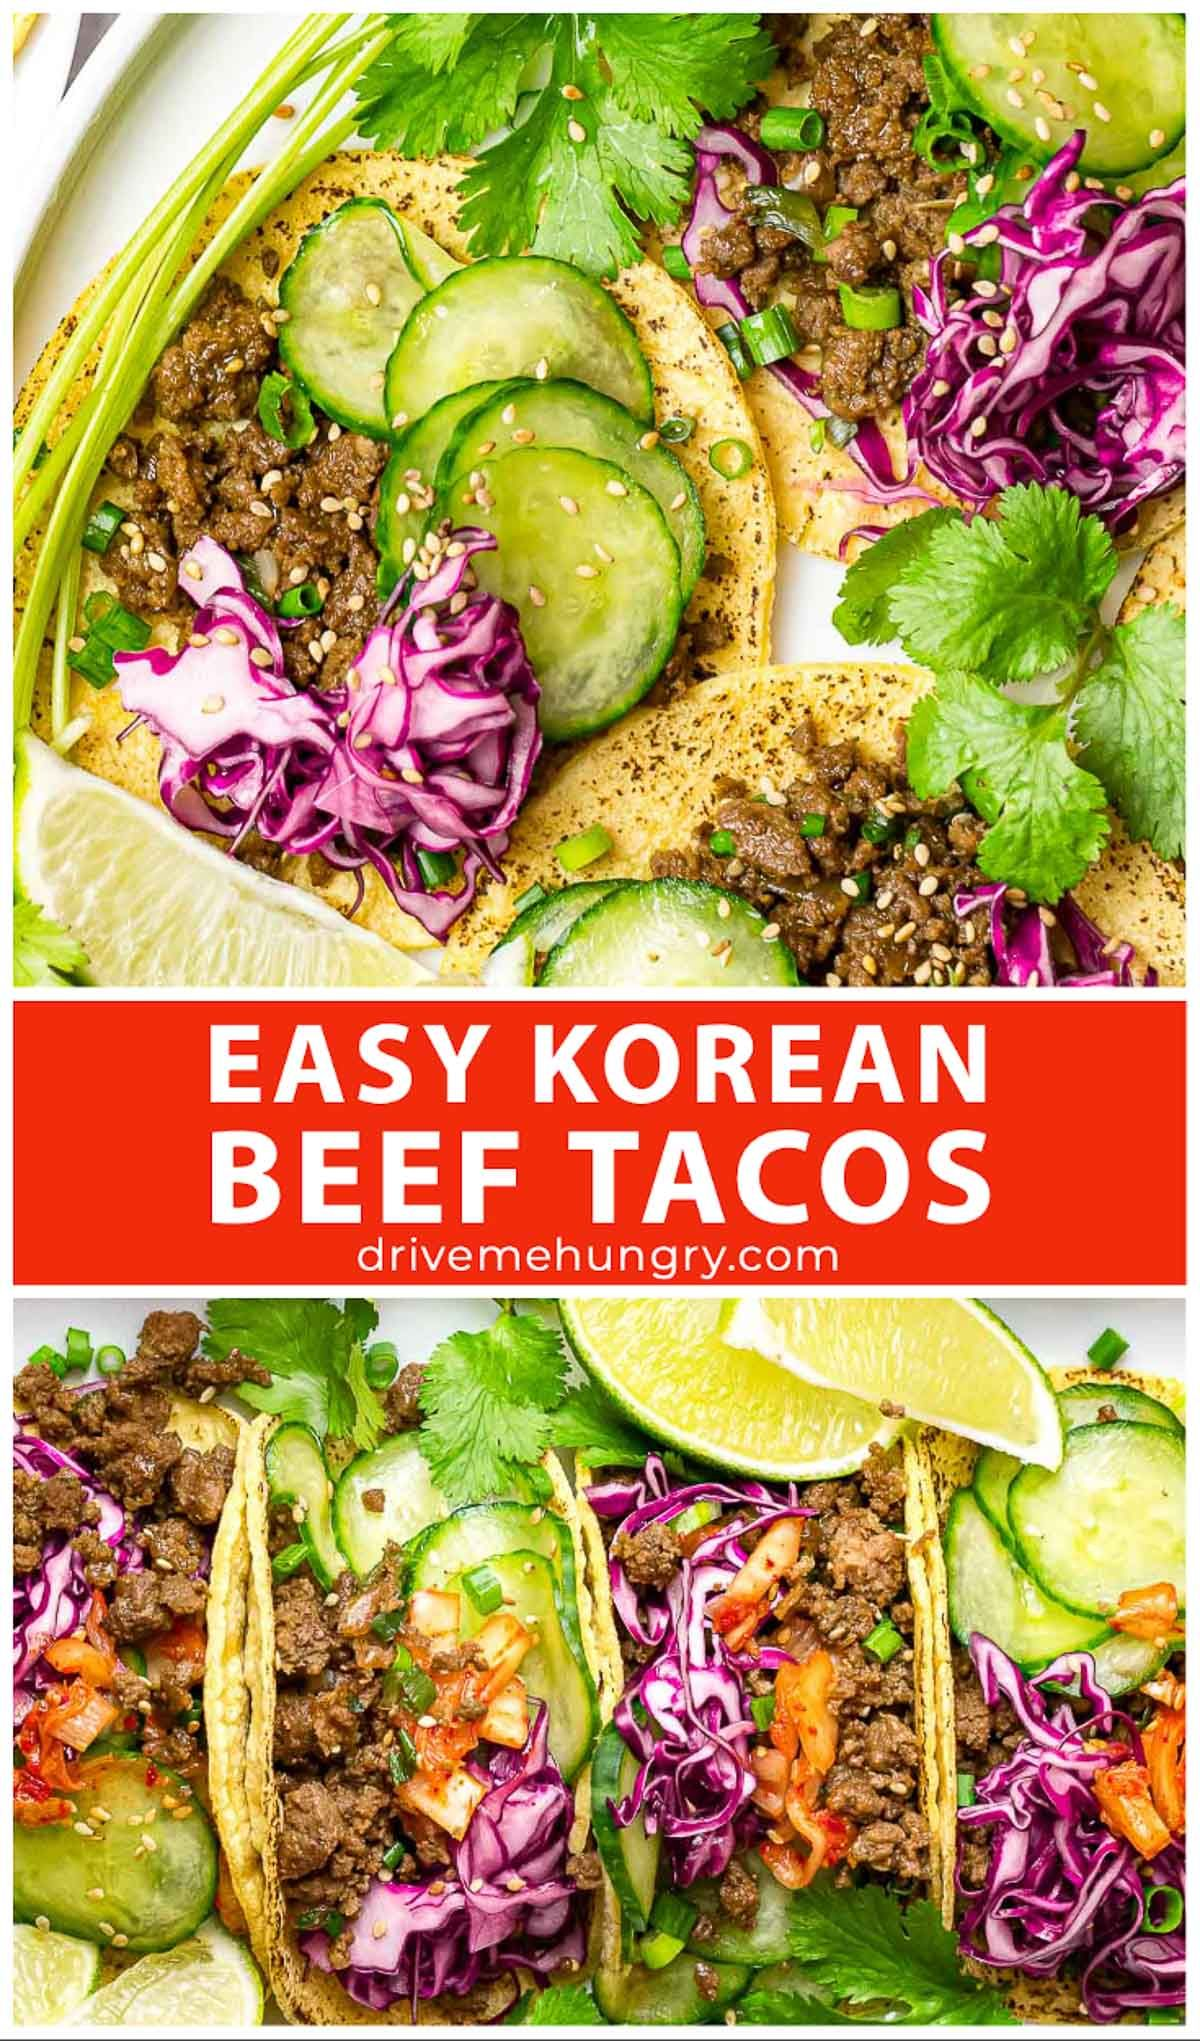 Korean Beef Tacos With Cabbage Slaw And Pickled Cucumbers Recipe In 2020 Korean Beef Tacos Korean Beef Healthy Appetizer Recipes